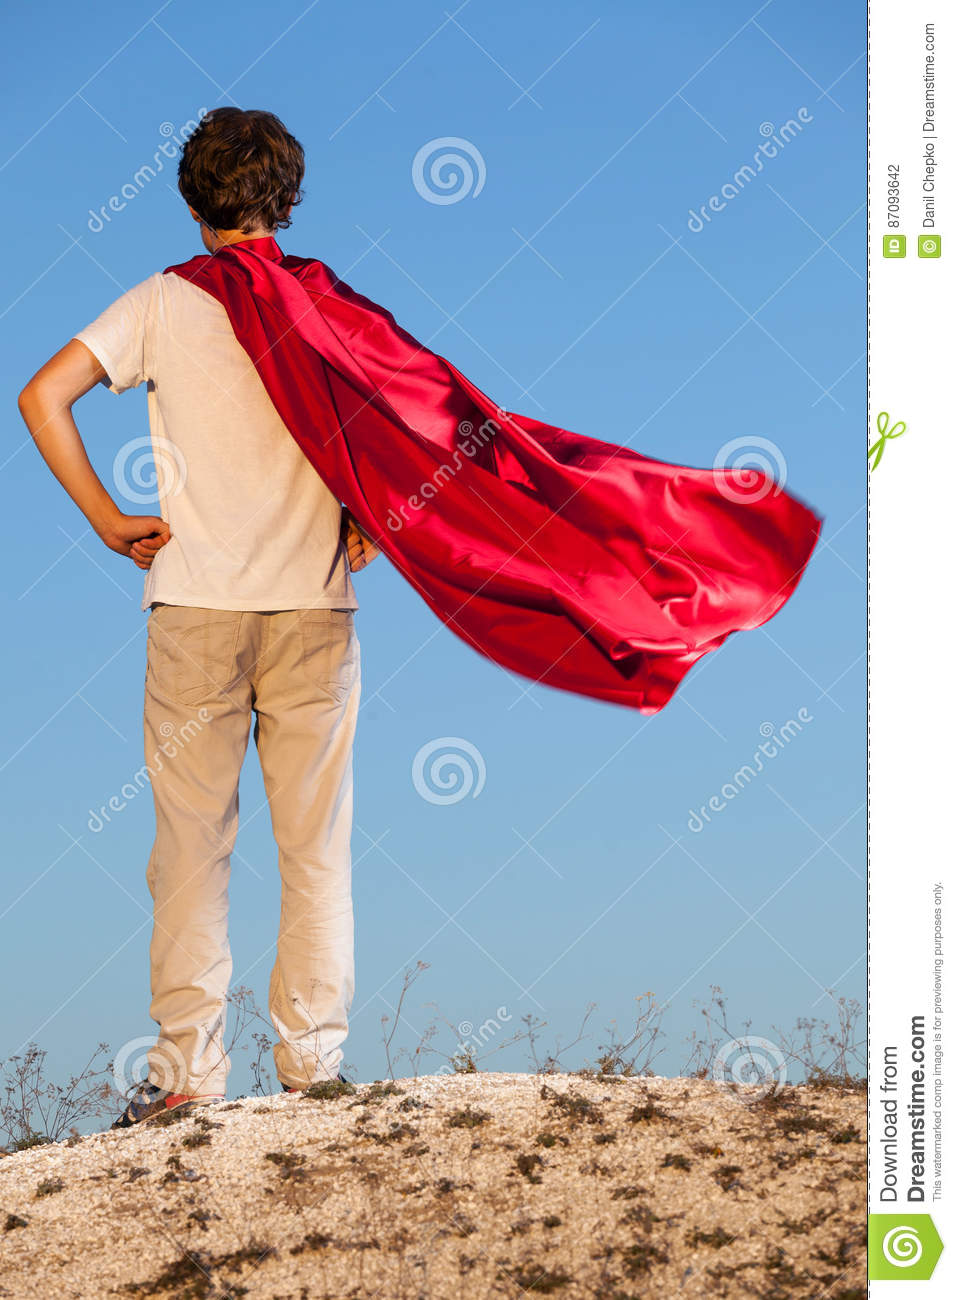 Boy playing superheroes on the sky background,